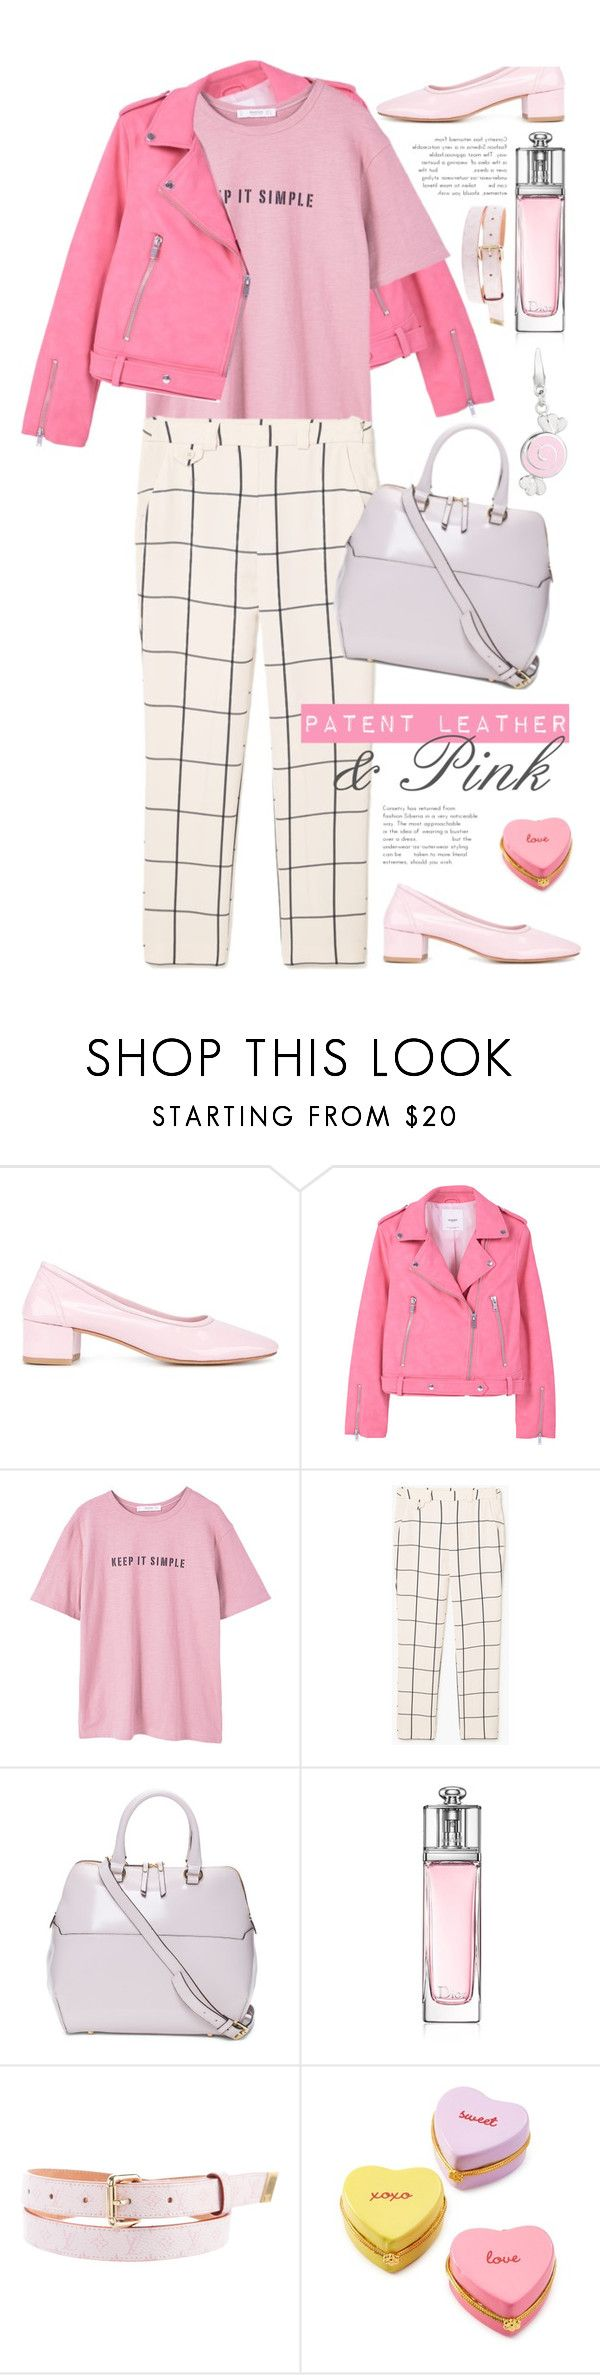 """Candy Shop"" by vazsu ❤ liked on Polyvore featuring Maryam Nassir Zadeh, MANGO, Christian Dior, Louis Vuitton, Two's Company and patentleather"